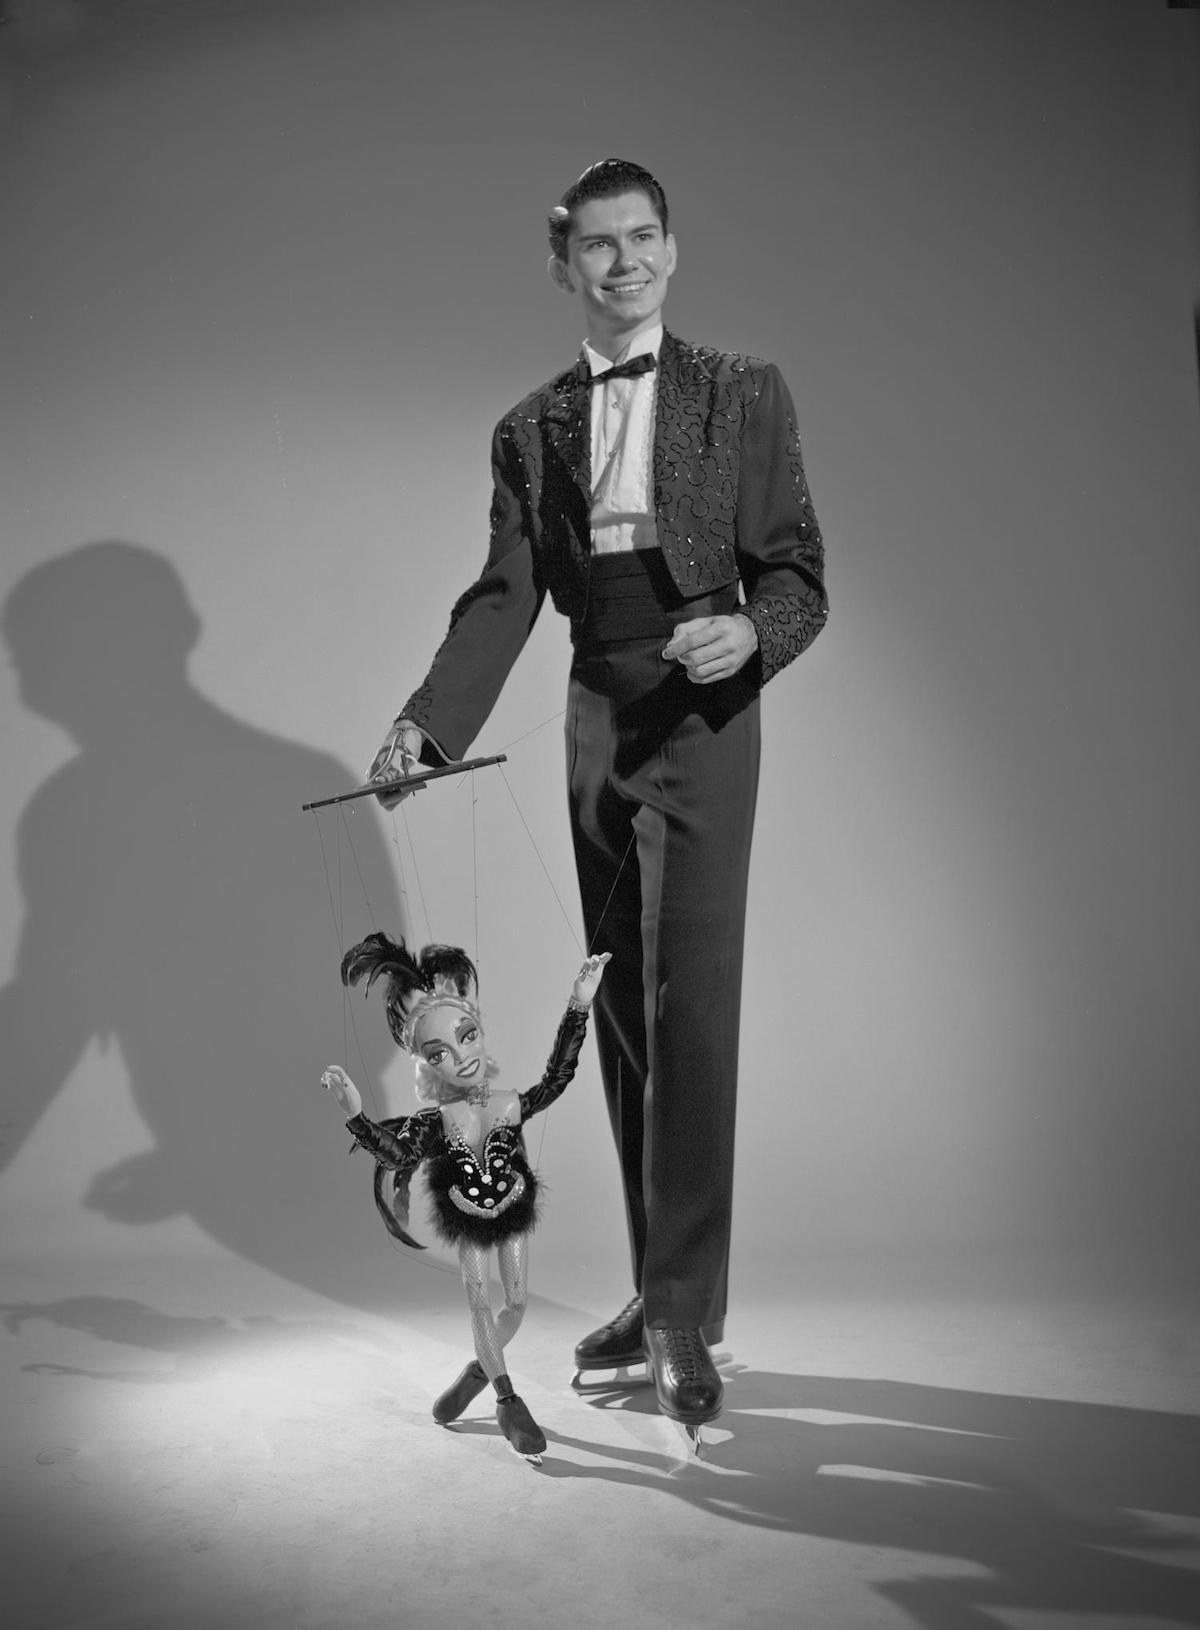 Photograph of a man named Jack Hines posing for a portrait wearing ice skates and holding a marionette. DATE: 19uu CREATOR: Williams, Byrd M. (Byrd Moore), III